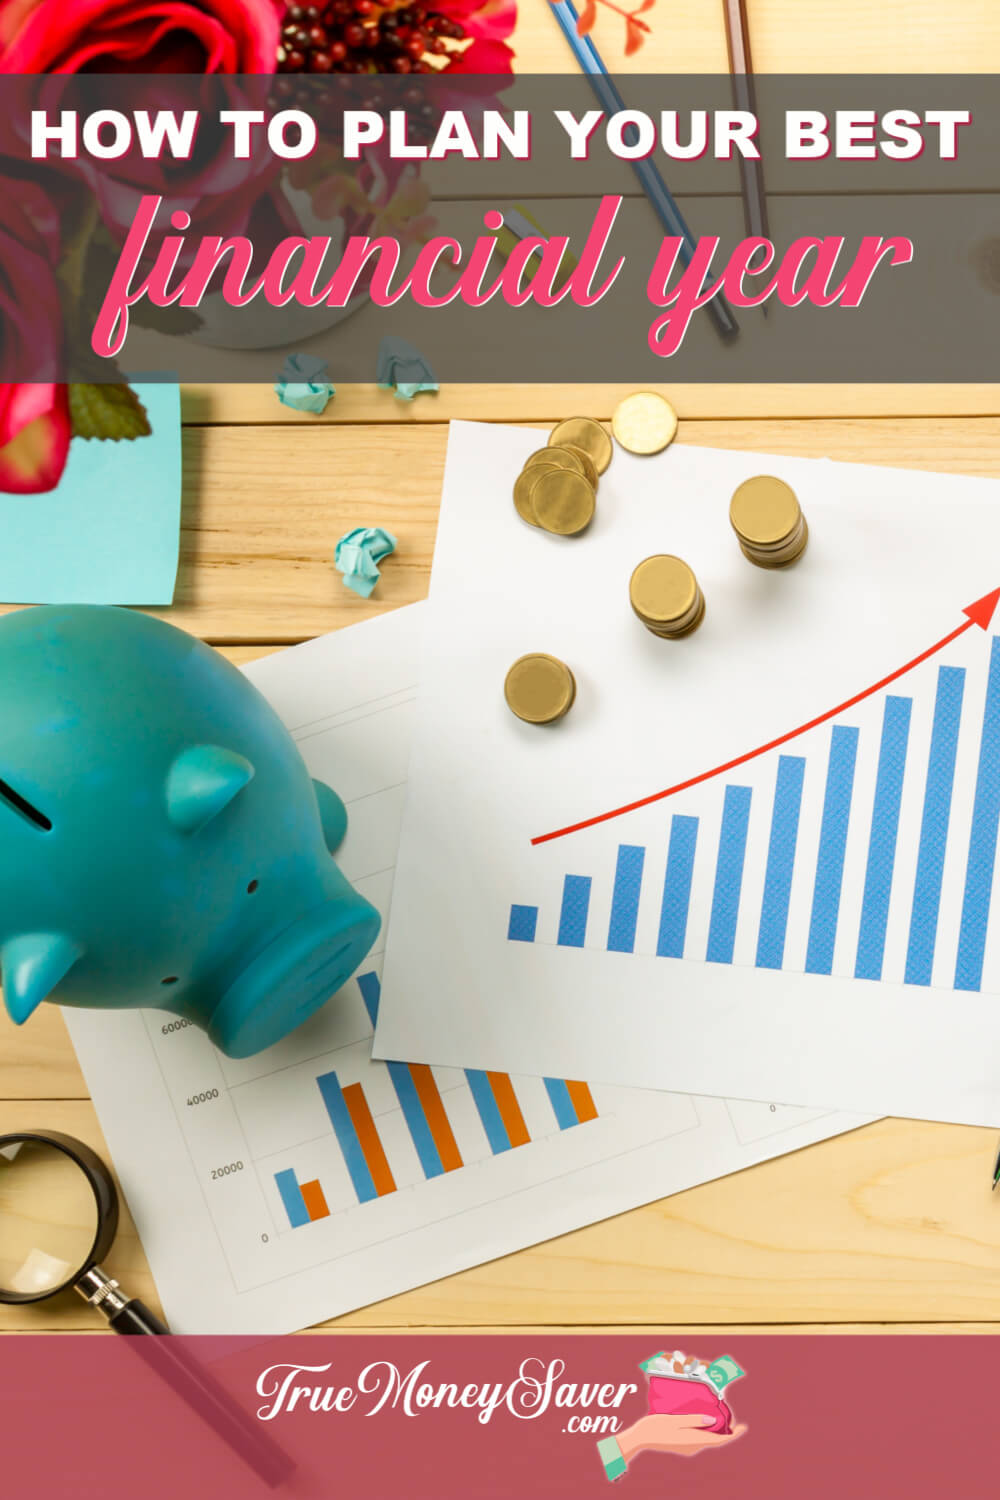 Ready to start your financial planning for the new year? Start with these financial planning tips for personal finance to get you on the right track! Plus, these family financial planning ideas will help your goals for creating your best financial year yet! Get started here!  #truemoneysaver #financialfreedom  #debtfree  #debtfreecommunity  #bestyearever #bestyear #bestyearyet #budgetplanning #financialplanning #planningforsuccess #planningforthefuture